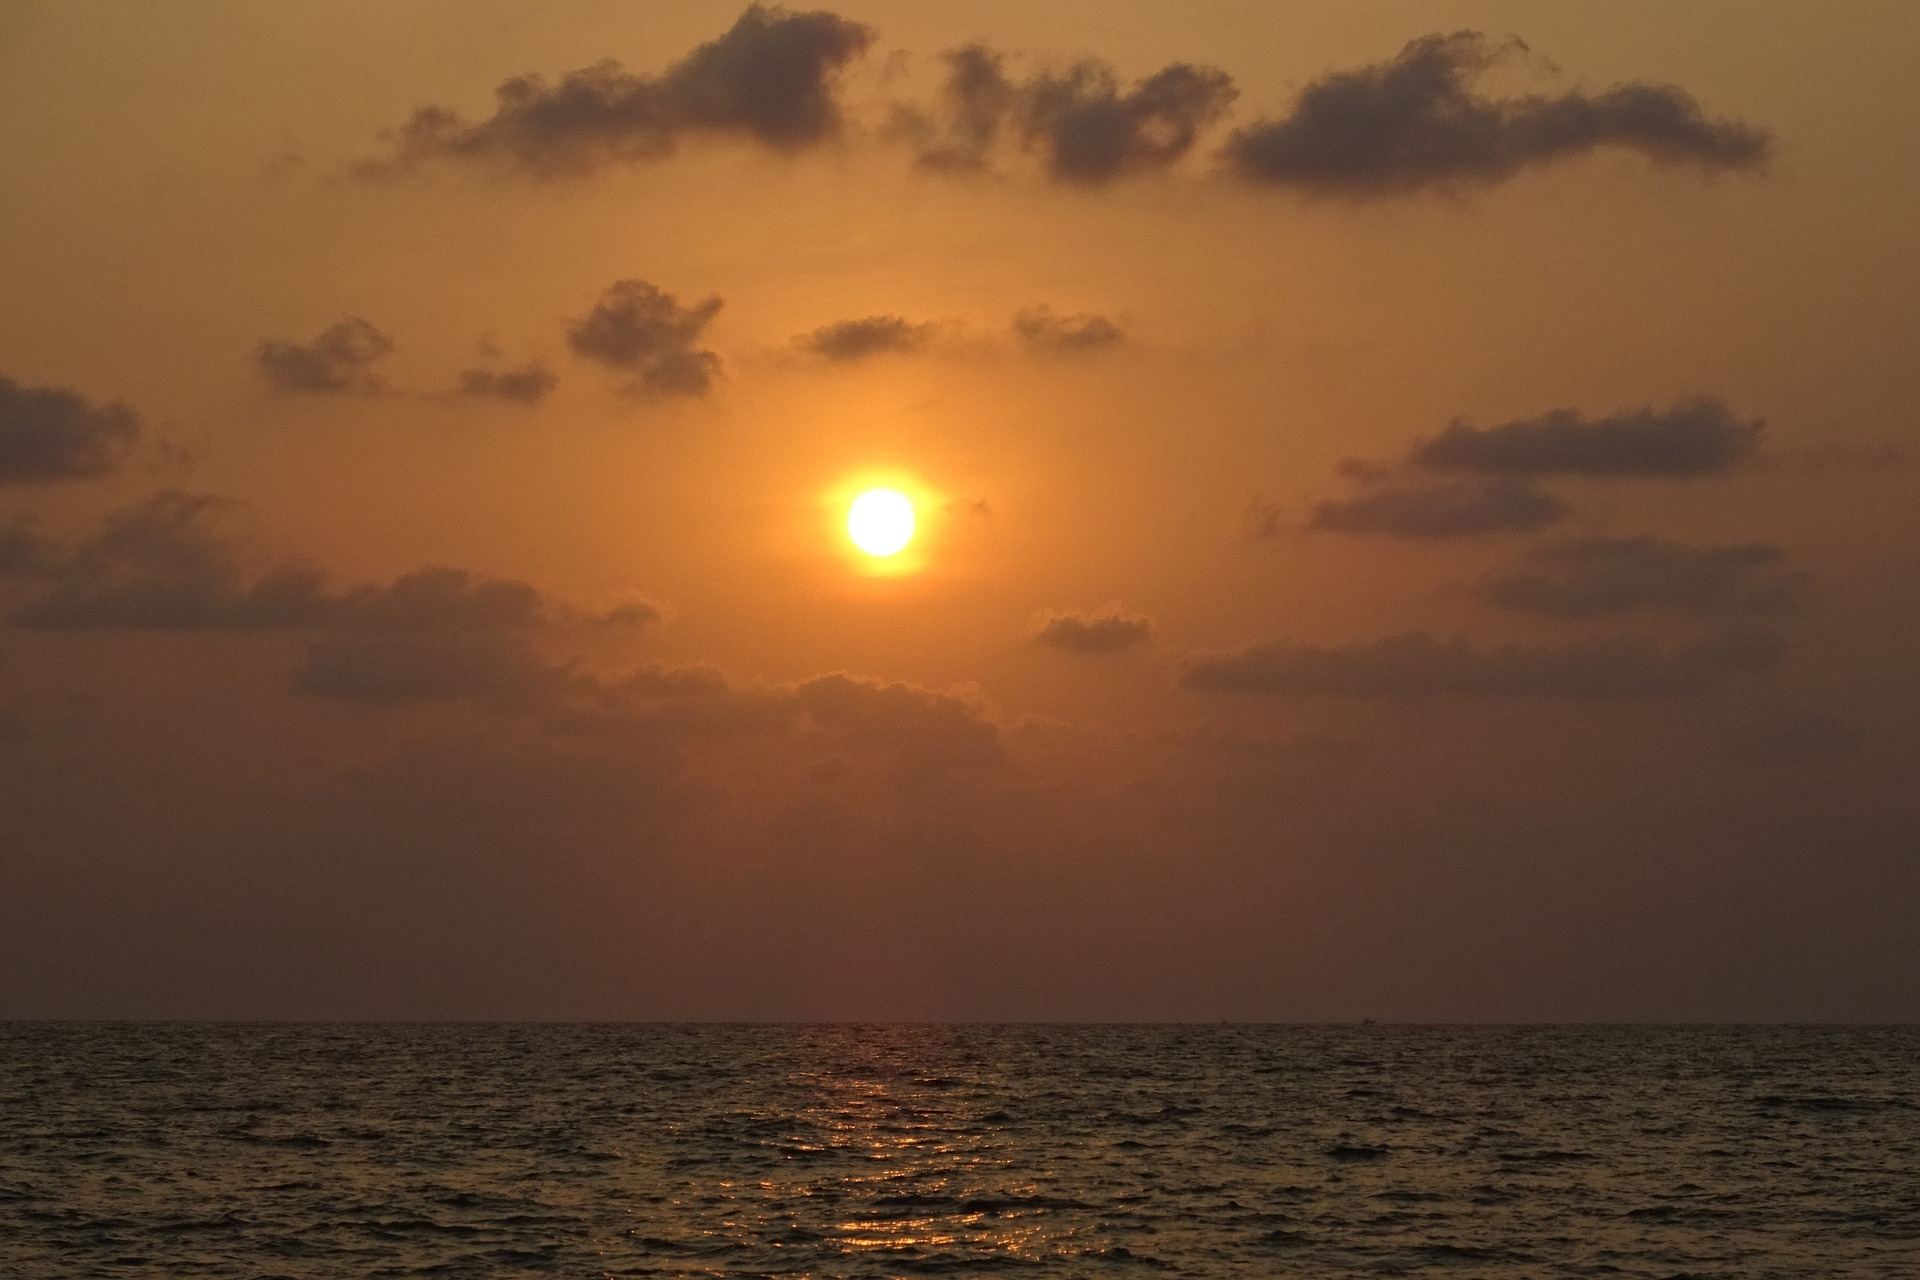 Mangalore- the city of fascinating beaches